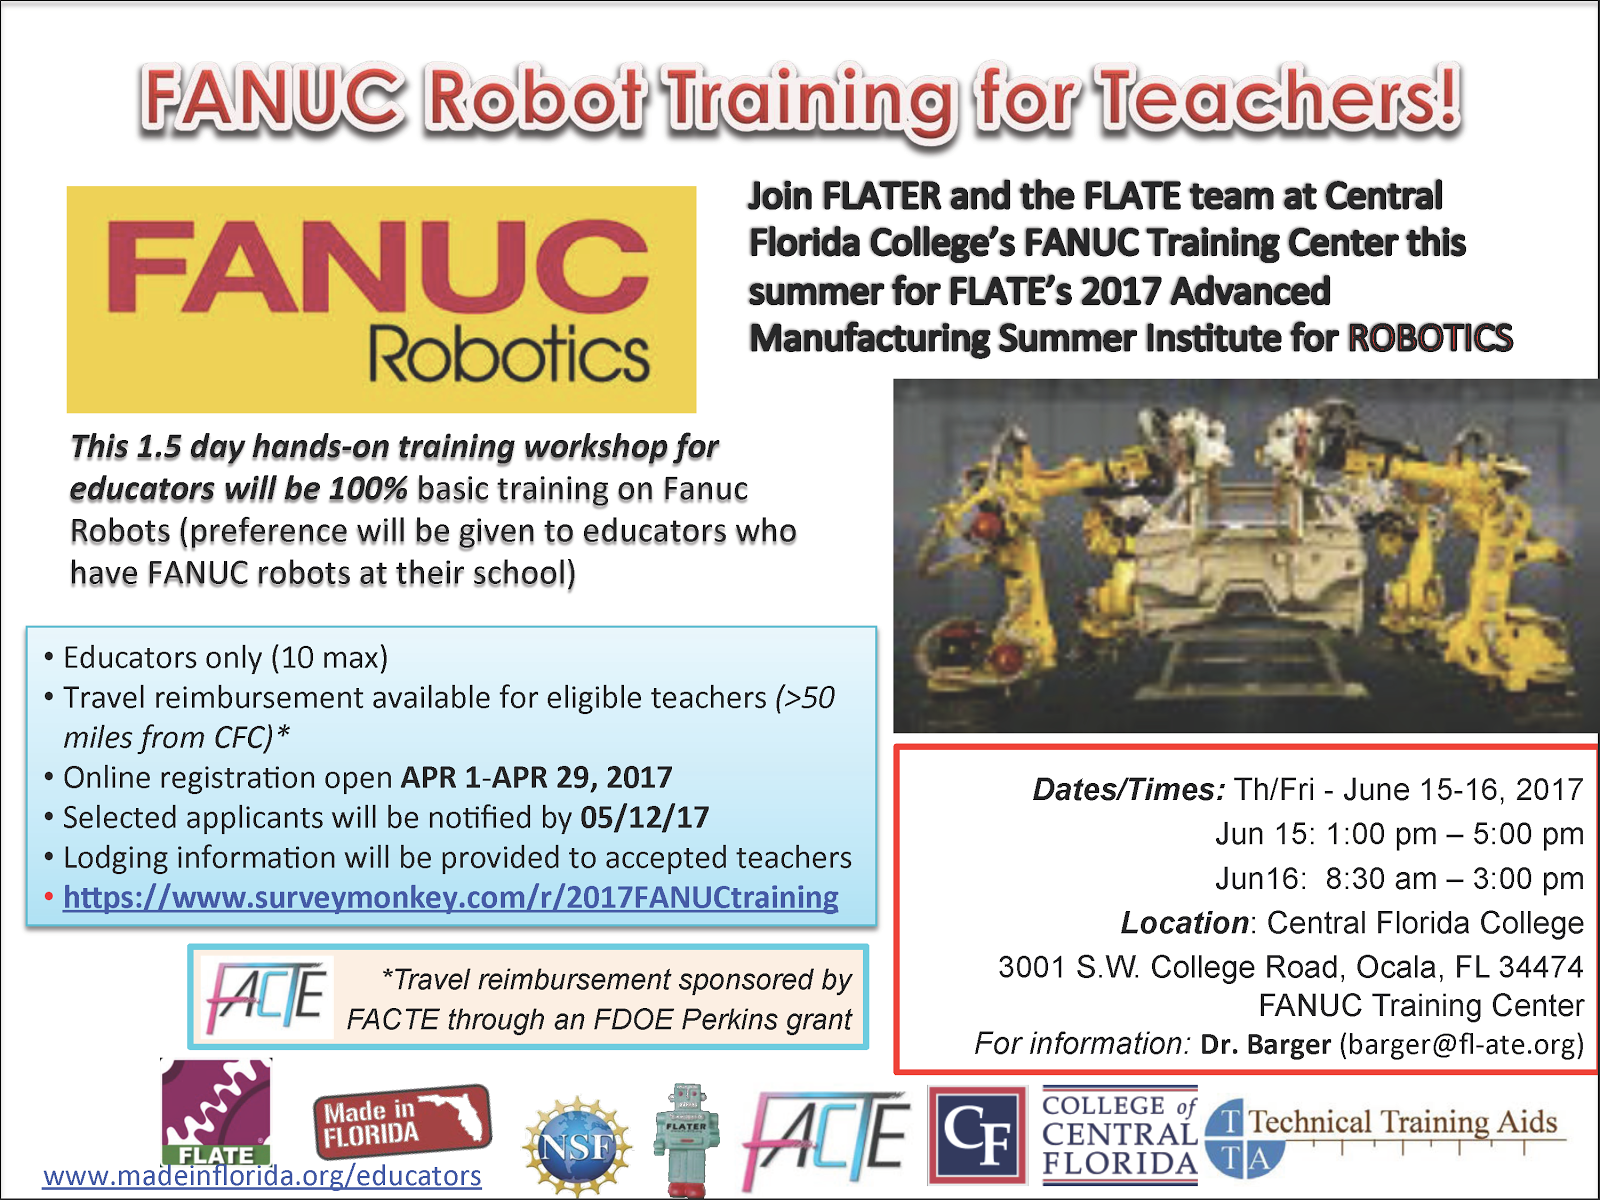 FANUC Robot Training for Teachers